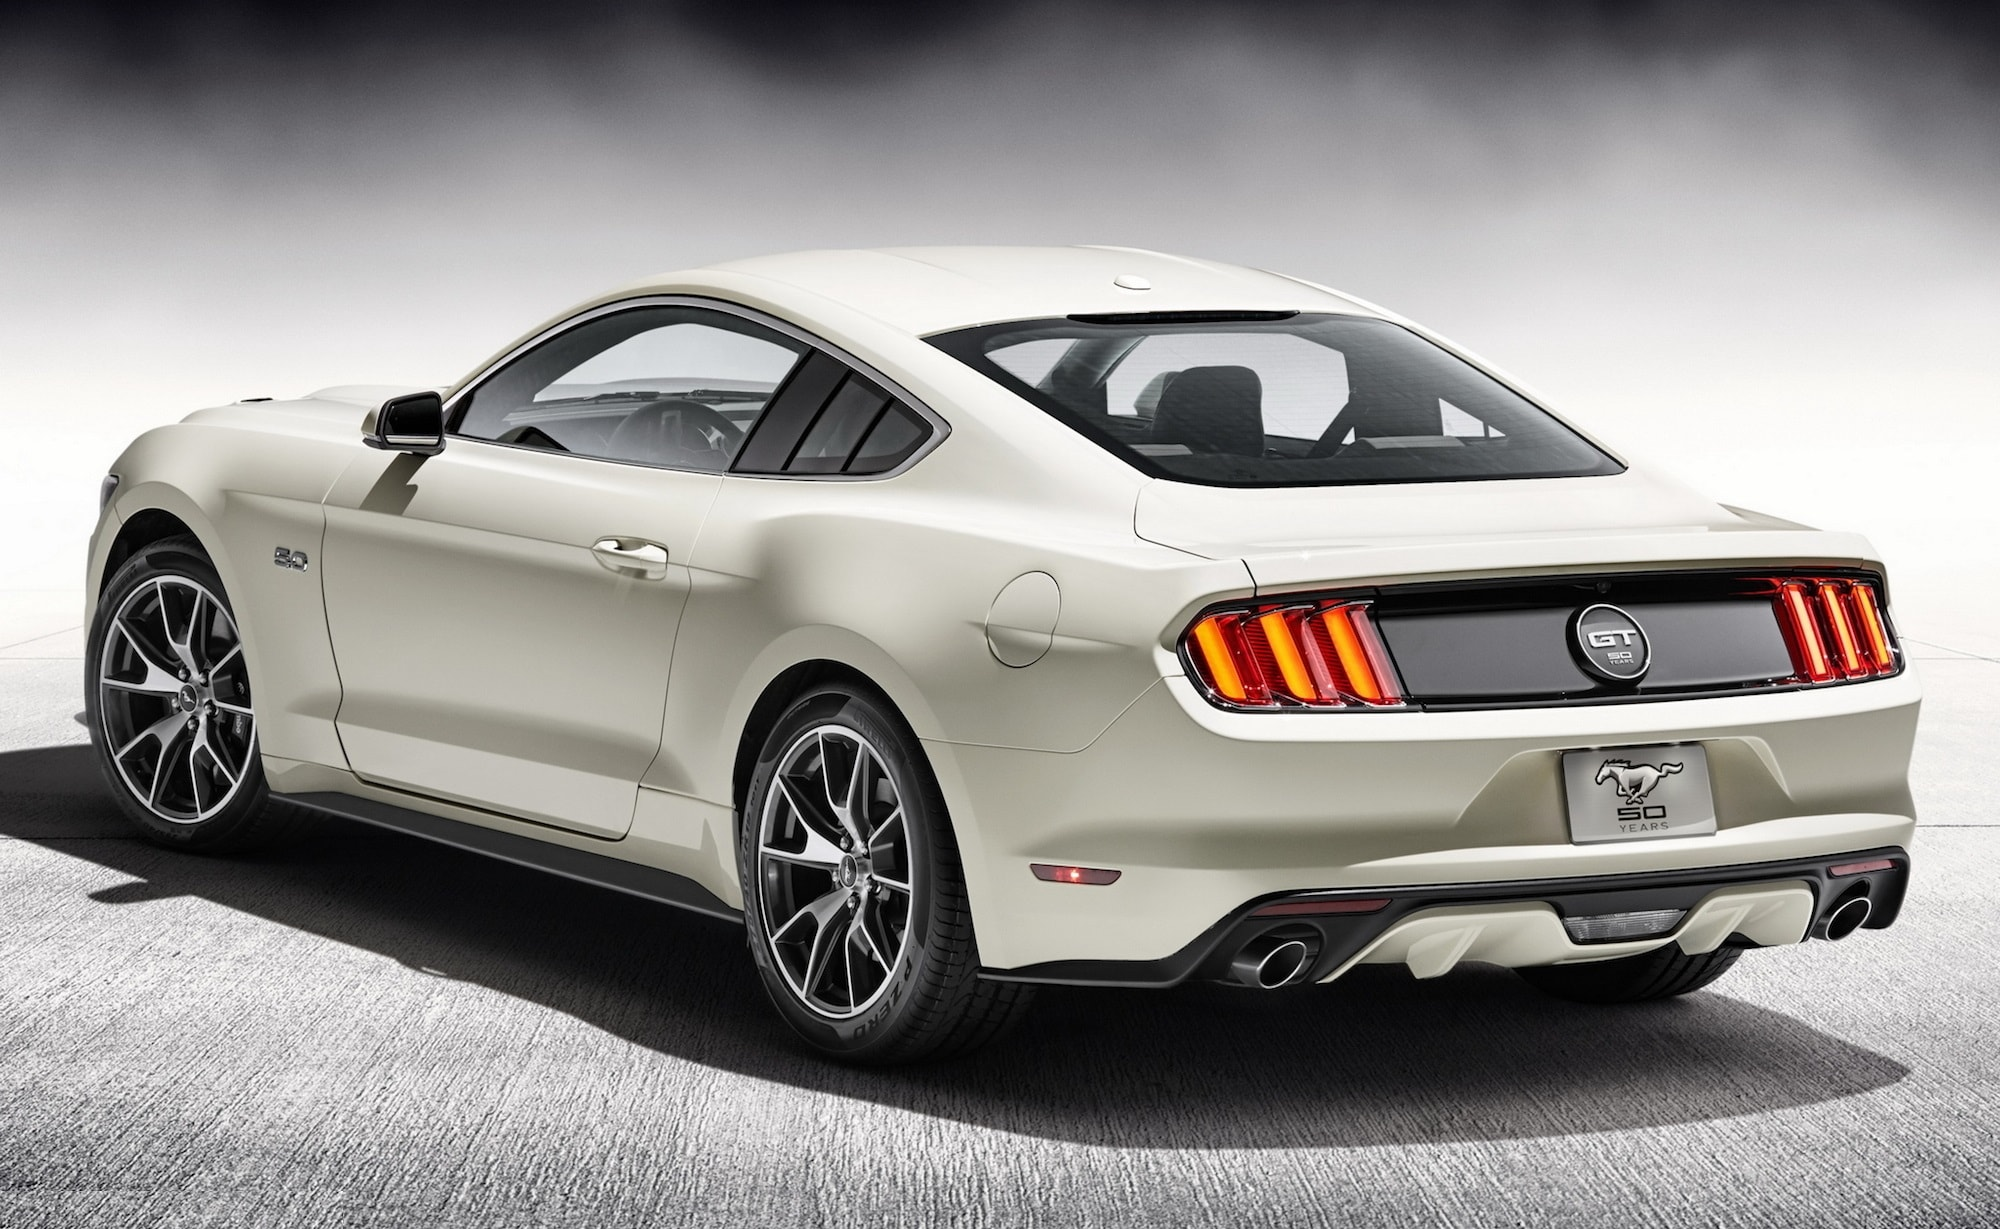 Ford Mustang GT Background